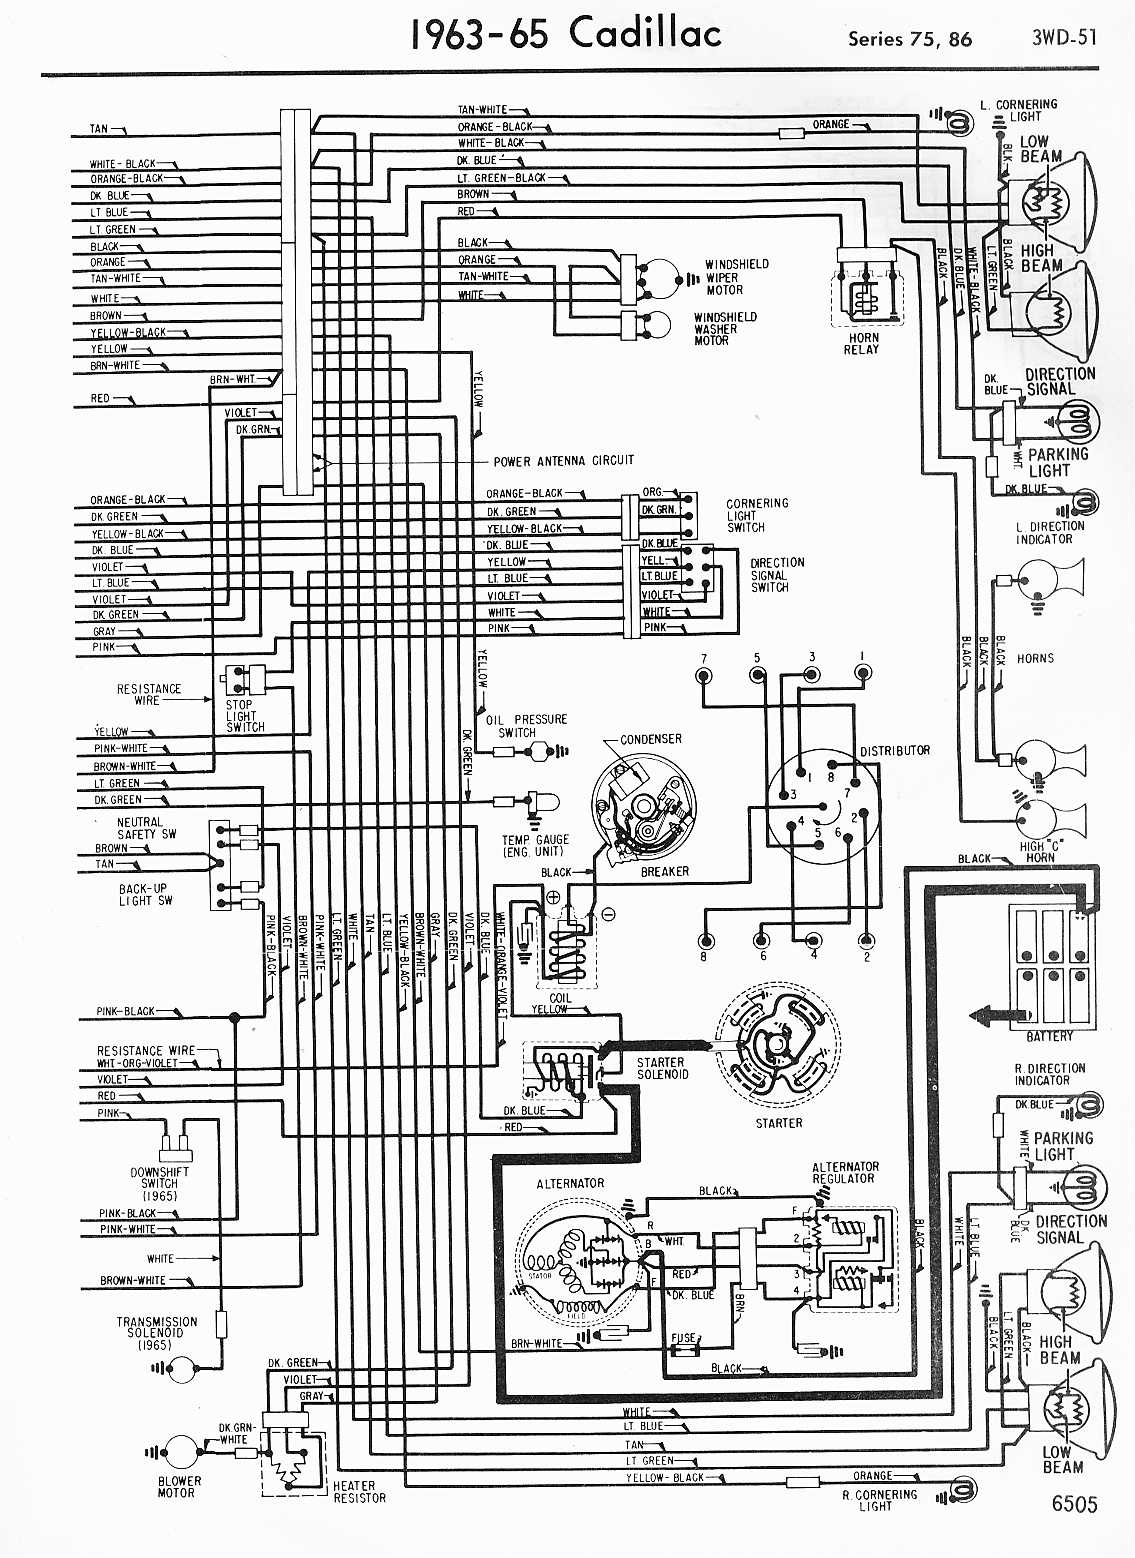 MWireCadi65_3WD 051 cadillac wiring diagrams 1957 1965 92 cadillac deville wiring diagrams at bayanpartner.co